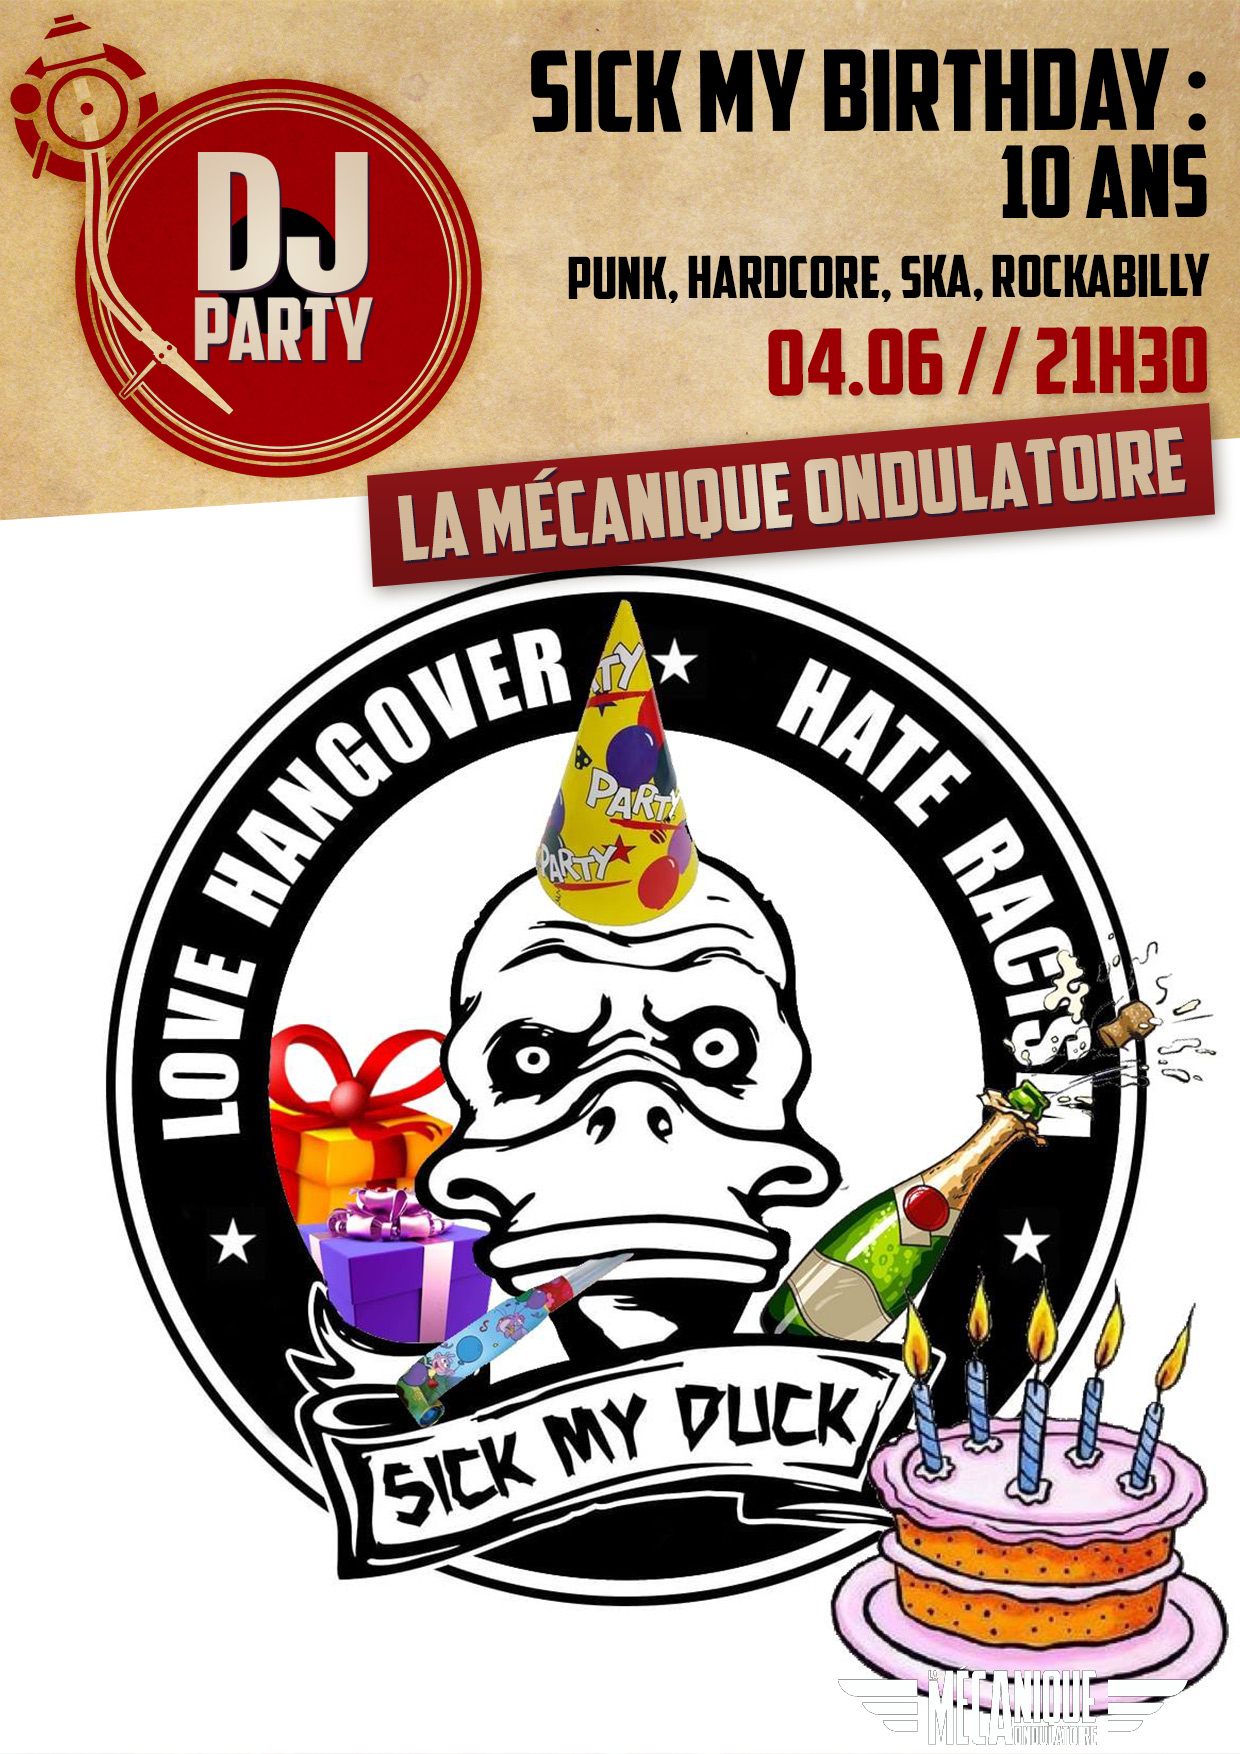 Sick My Birthday : 10 ans ! // 04.06